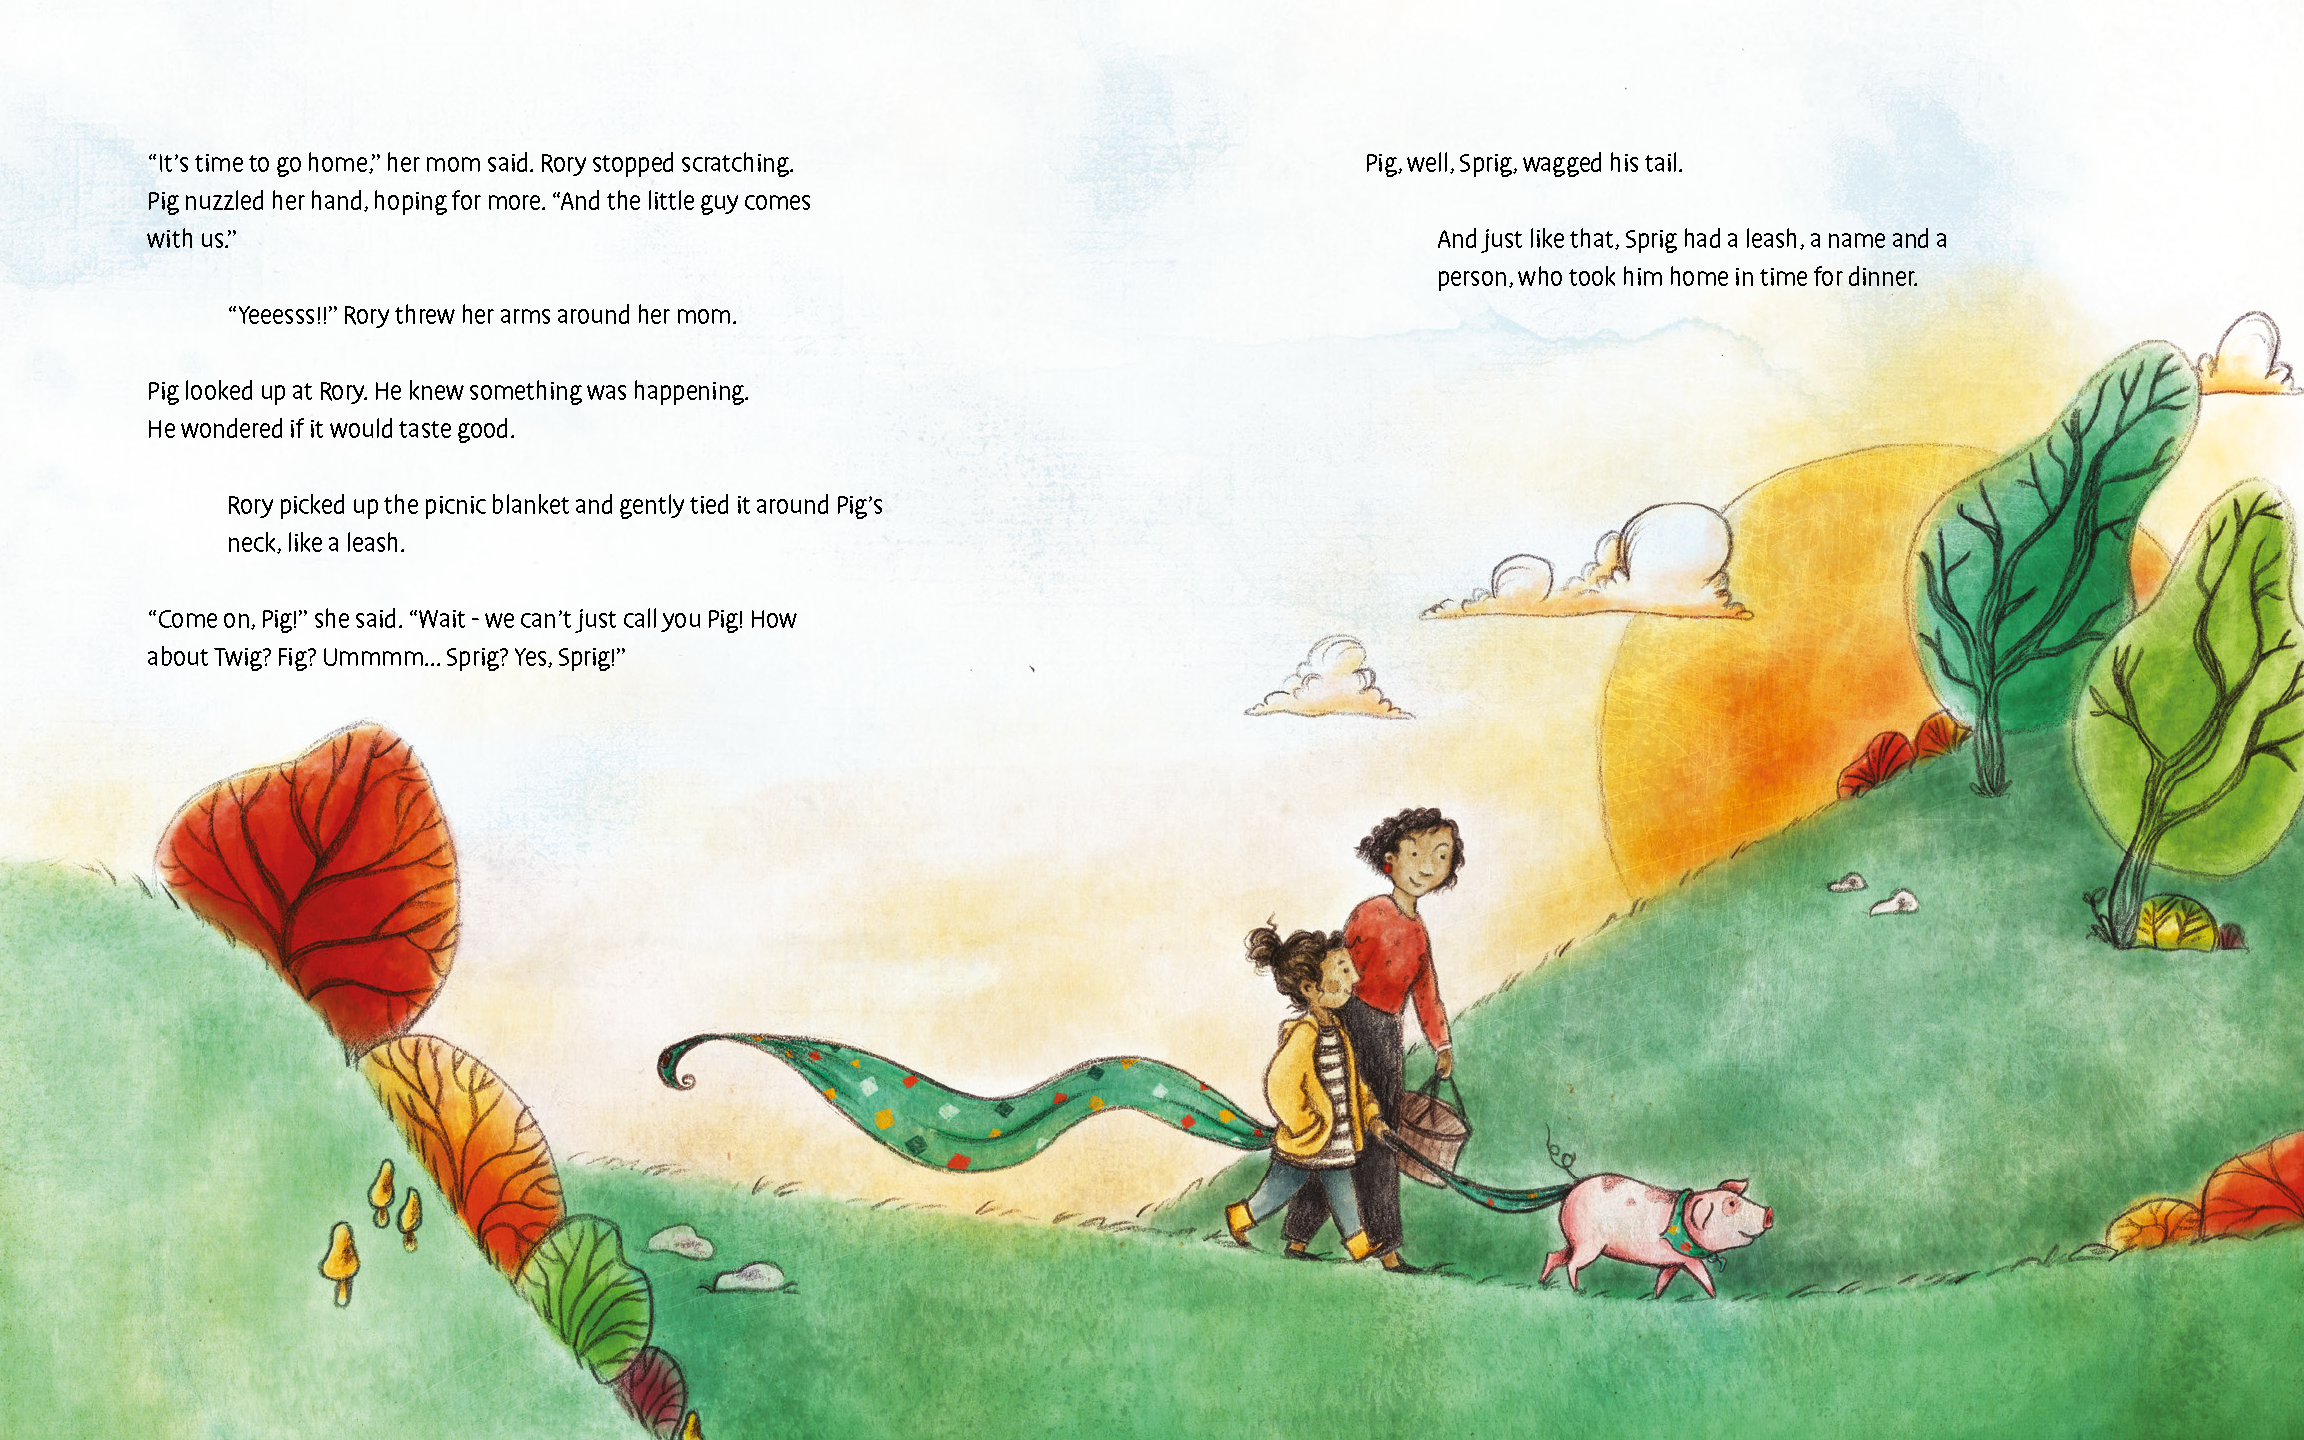 Sprig sets out on a pig-centered adventure that leads him to his new best friend, a girl named Rory. Inspired by true events, this light-hearted tale introduces kids to an intelligent and inquisitive pig, one not all that different from most other pigs, who finds his way to a good life. On  sale  now.